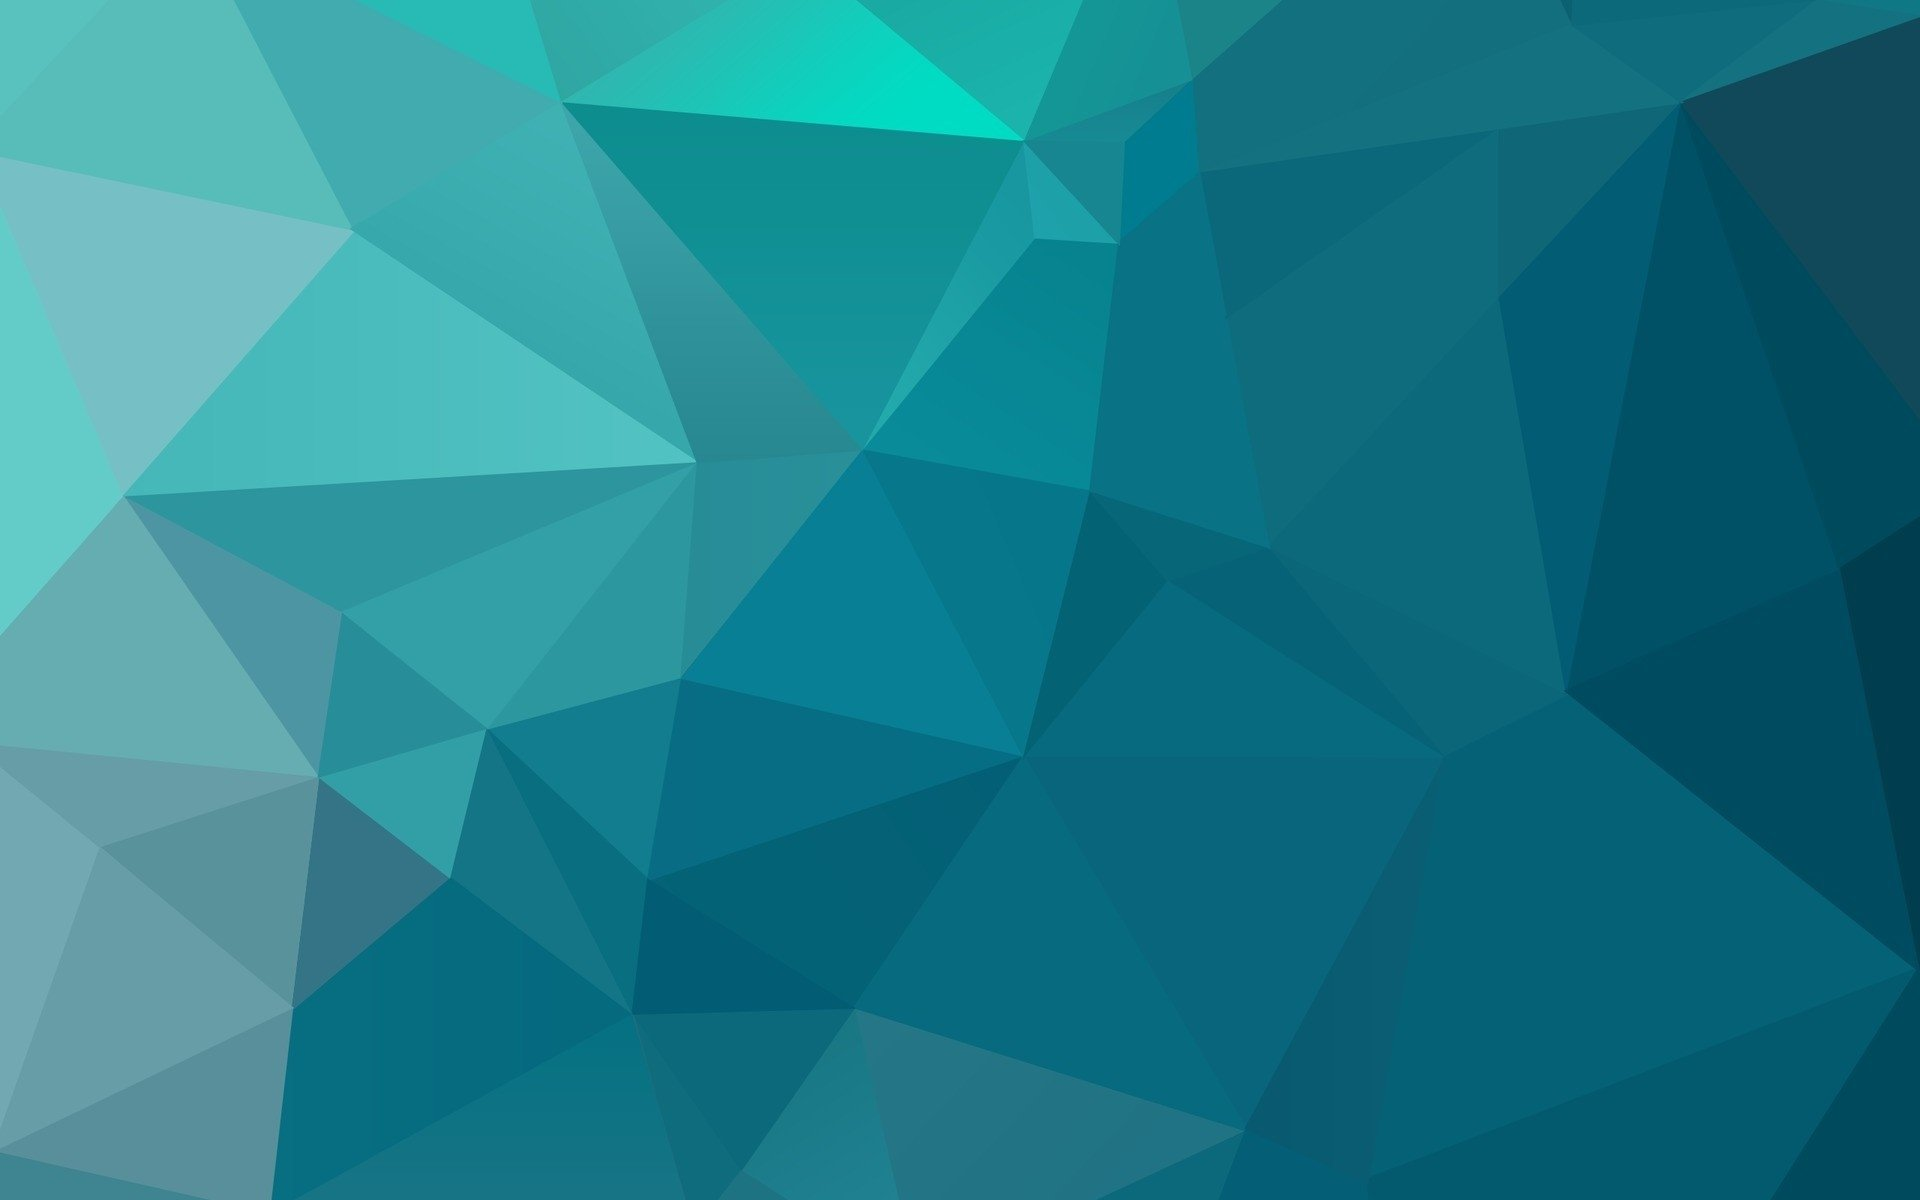 Turquoise Full HD Wallpaper And Hintergrund